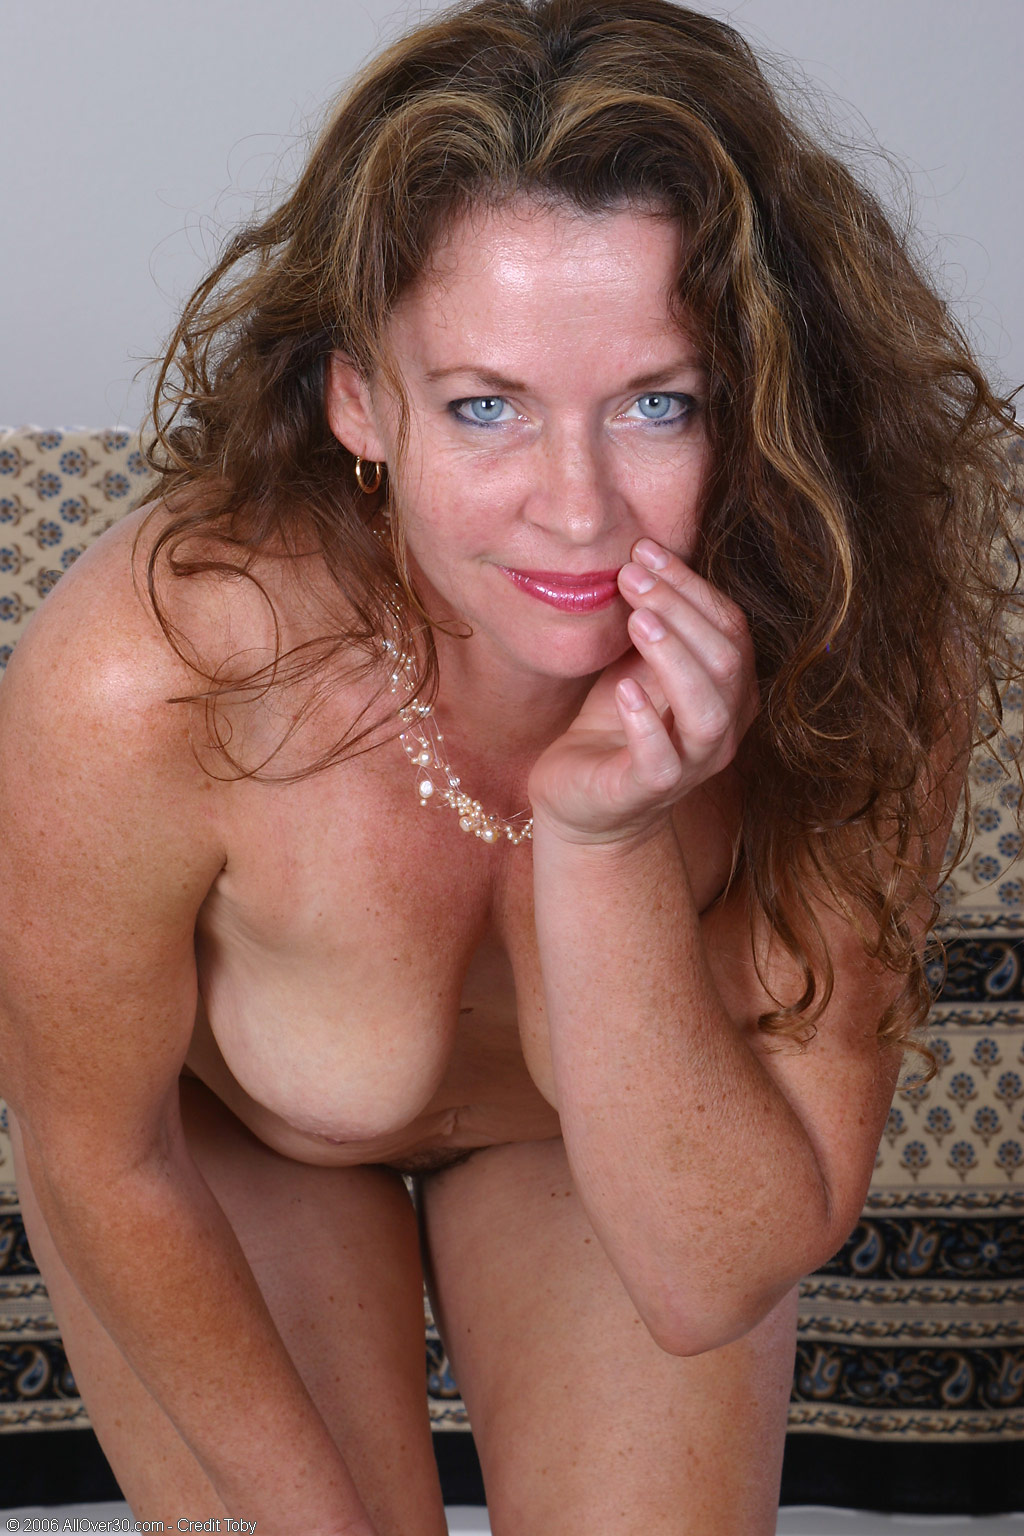 allover30free - featuring sally - high quality mature and milf